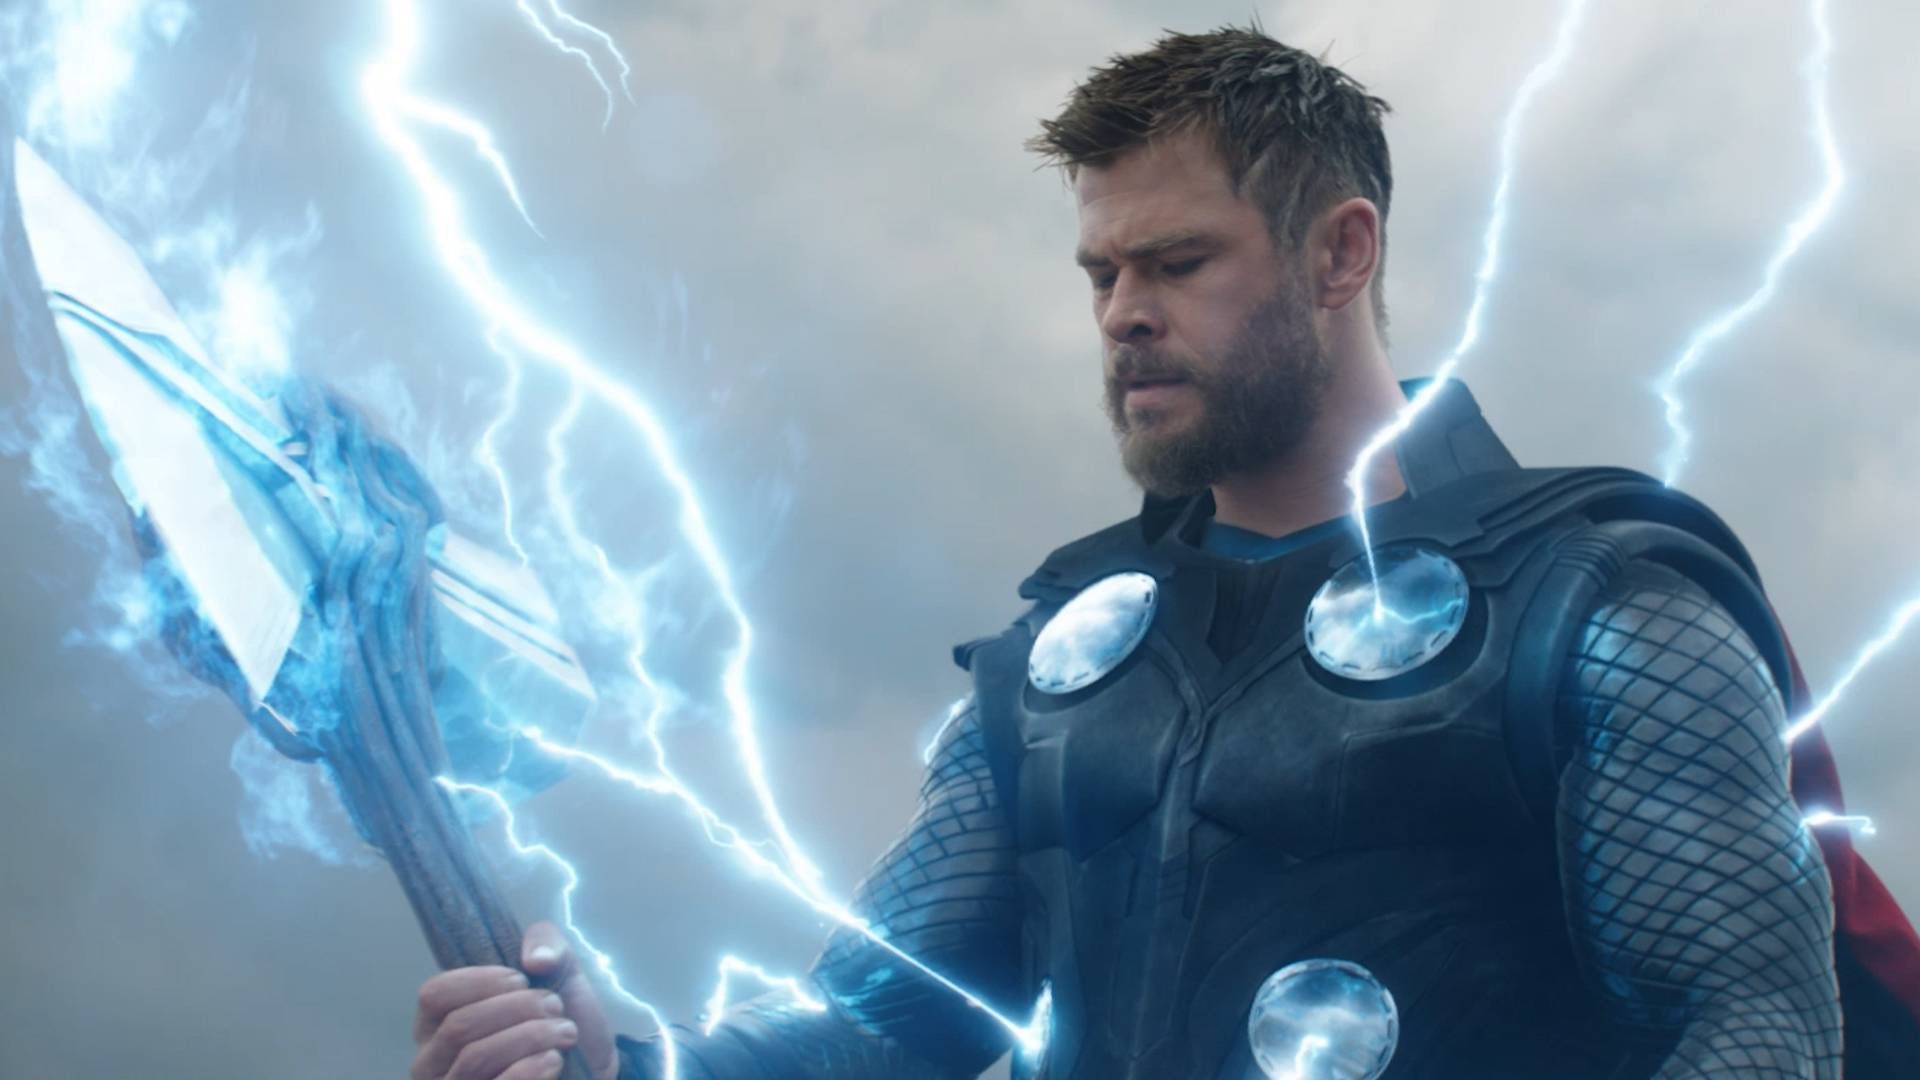 Avengers: Endgame Early Reviews Suggest Marvel Fans Are In For Another Treat